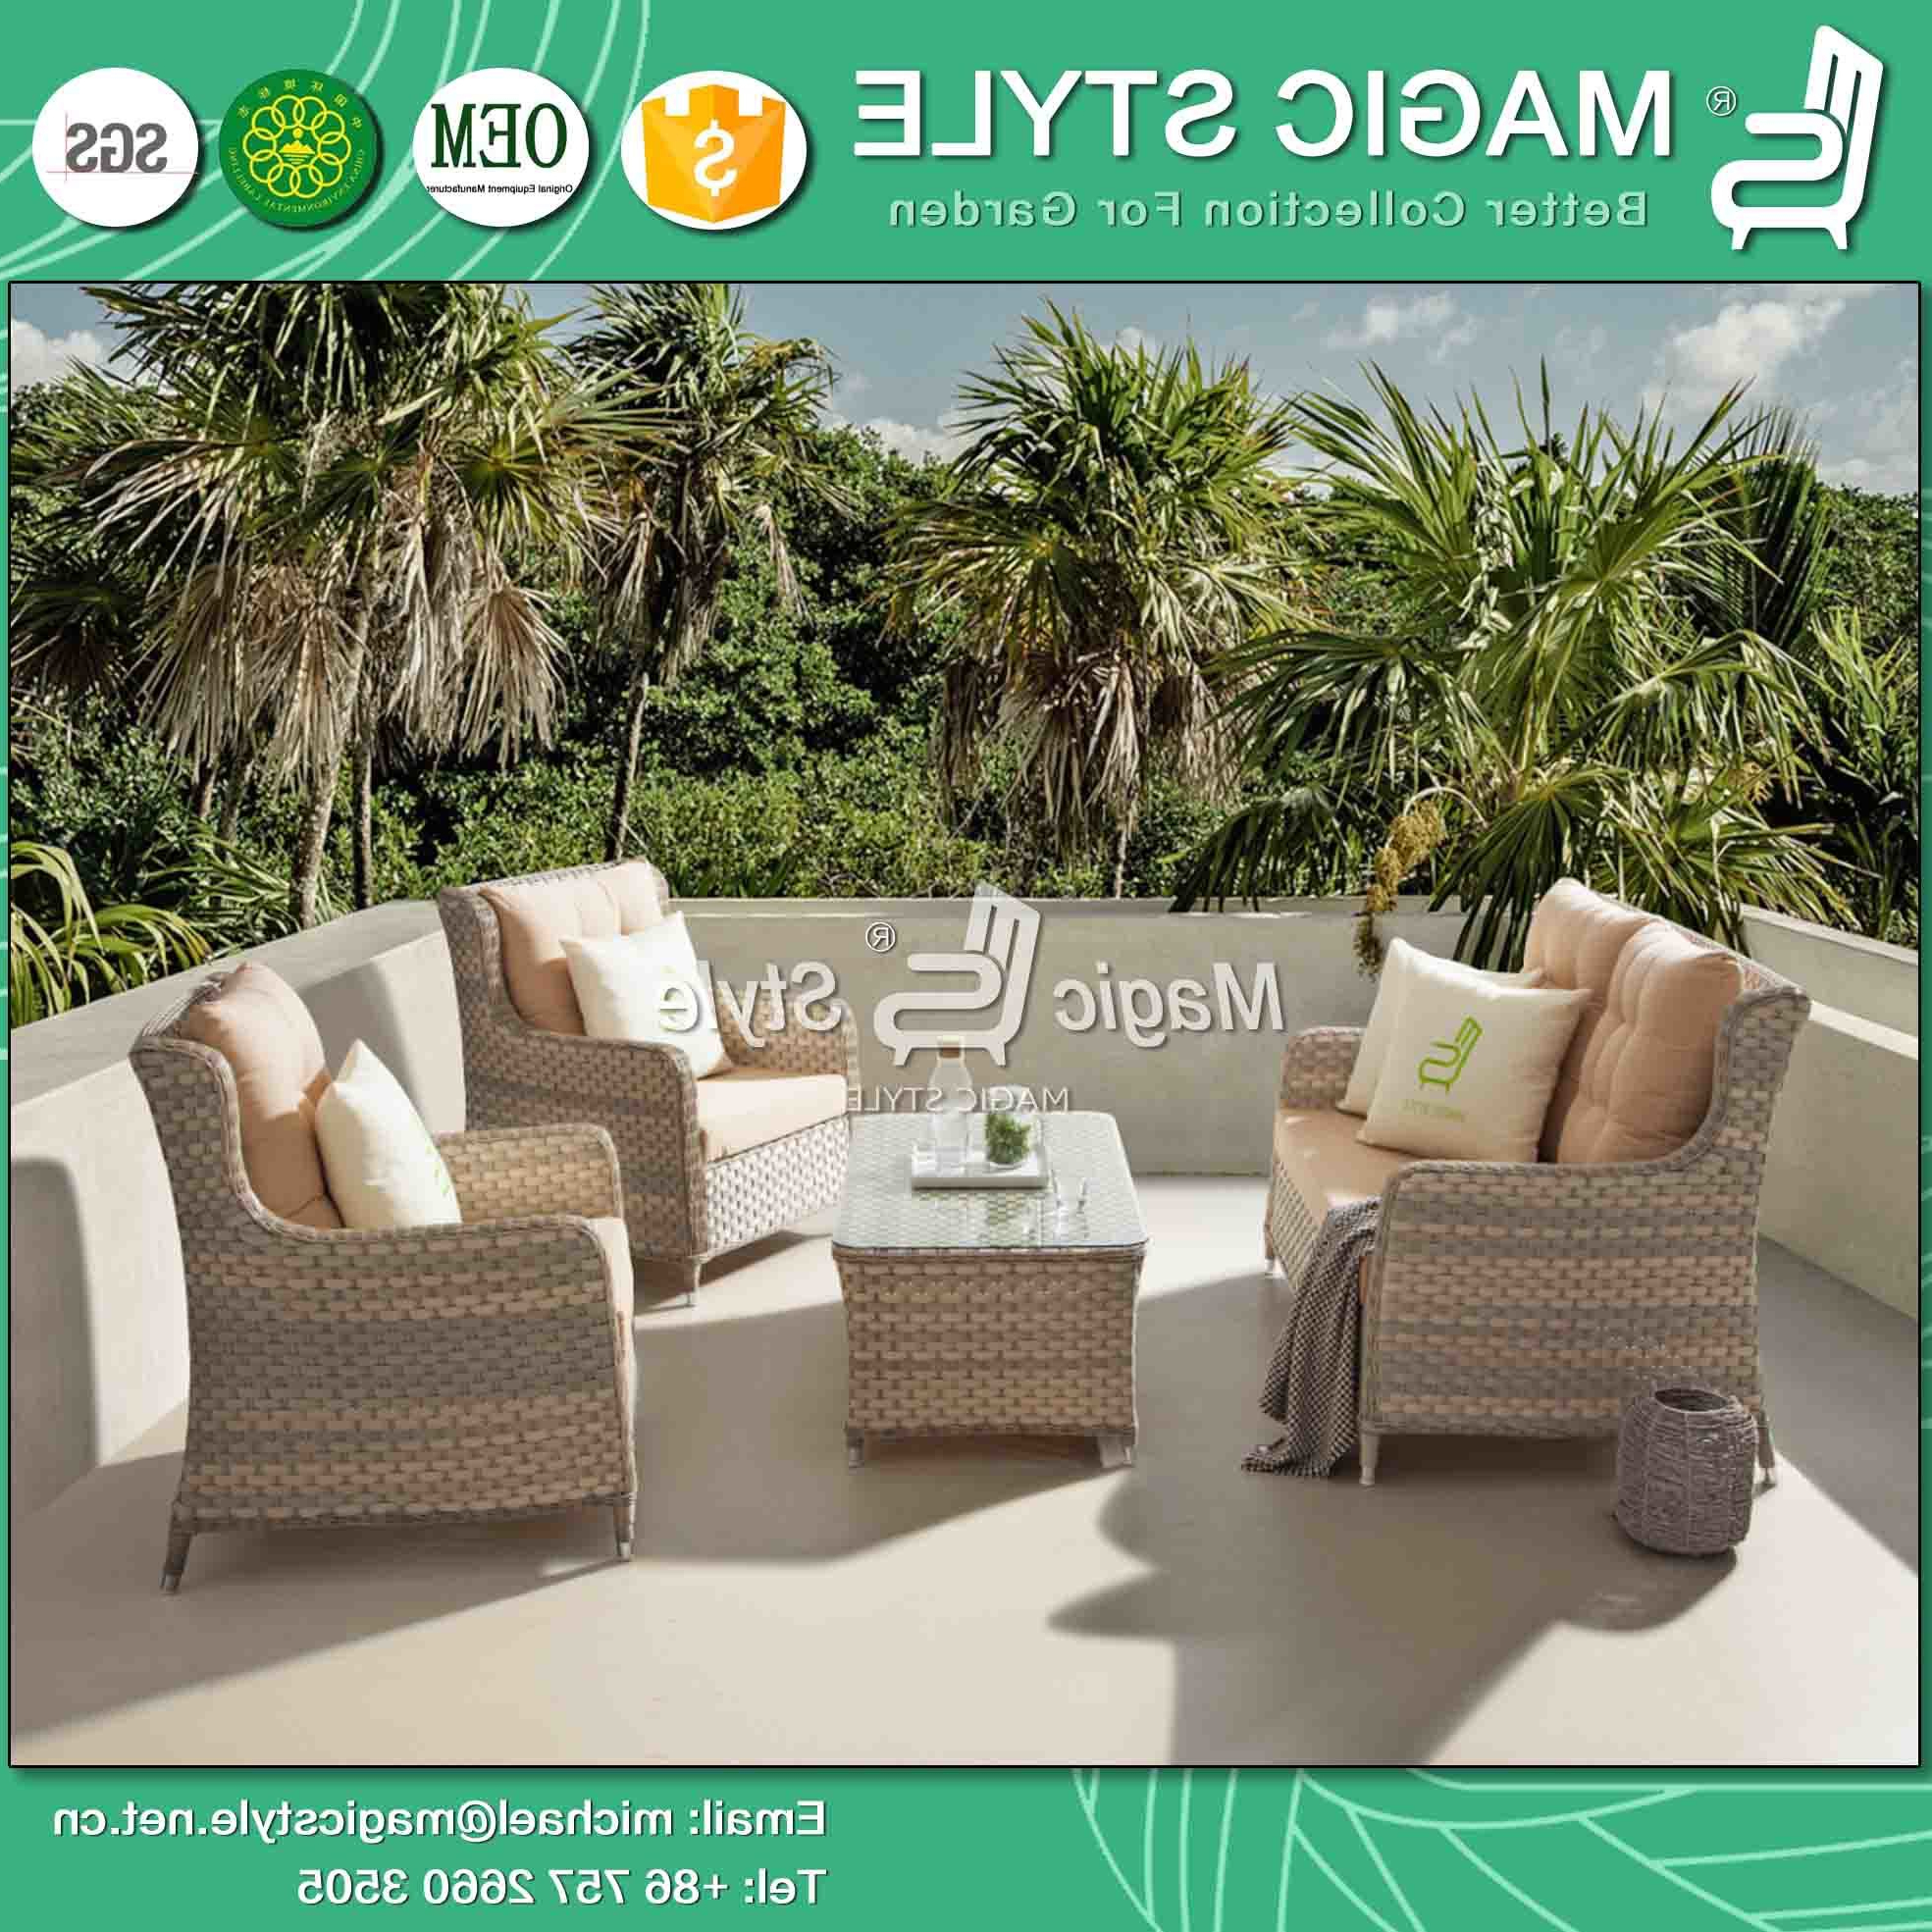 [%[hot Item] Patio Sofa With Cushion Wicker Combination Sofa Set Outdoor Sofa Set Rattan 2 Seat Sofa Leisure Sofa For Hotel Patio Furniture Pertaining To Well Known Michal Patio Sofas With Cushions|michal Patio Sofas With Cushions With Regard To Best And Newest [hot Item] Patio Sofa With Cushion Wicker Combination Sofa Set Outdoor Sofa Set Rattan 2 Seat Sofa Leisure Sofa For Hotel Patio Furniture|newest Michal Patio Sofas With Cushions In [hot Item] Patio Sofa With Cushion Wicker Combination Sofa Set Outdoor Sofa Set Rattan 2 Seat Sofa Leisure Sofa For Hotel Patio Furniture|most Up To Date [hot Item] Patio Sofa With Cushion Wicker Combination Sofa Set Outdoor Sofa Set Rattan 2 Seat Sofa Leisure Sofa For Hotel Patio Furniture For Michal Patio Sofas With Cushions%] (View 6 of 20)